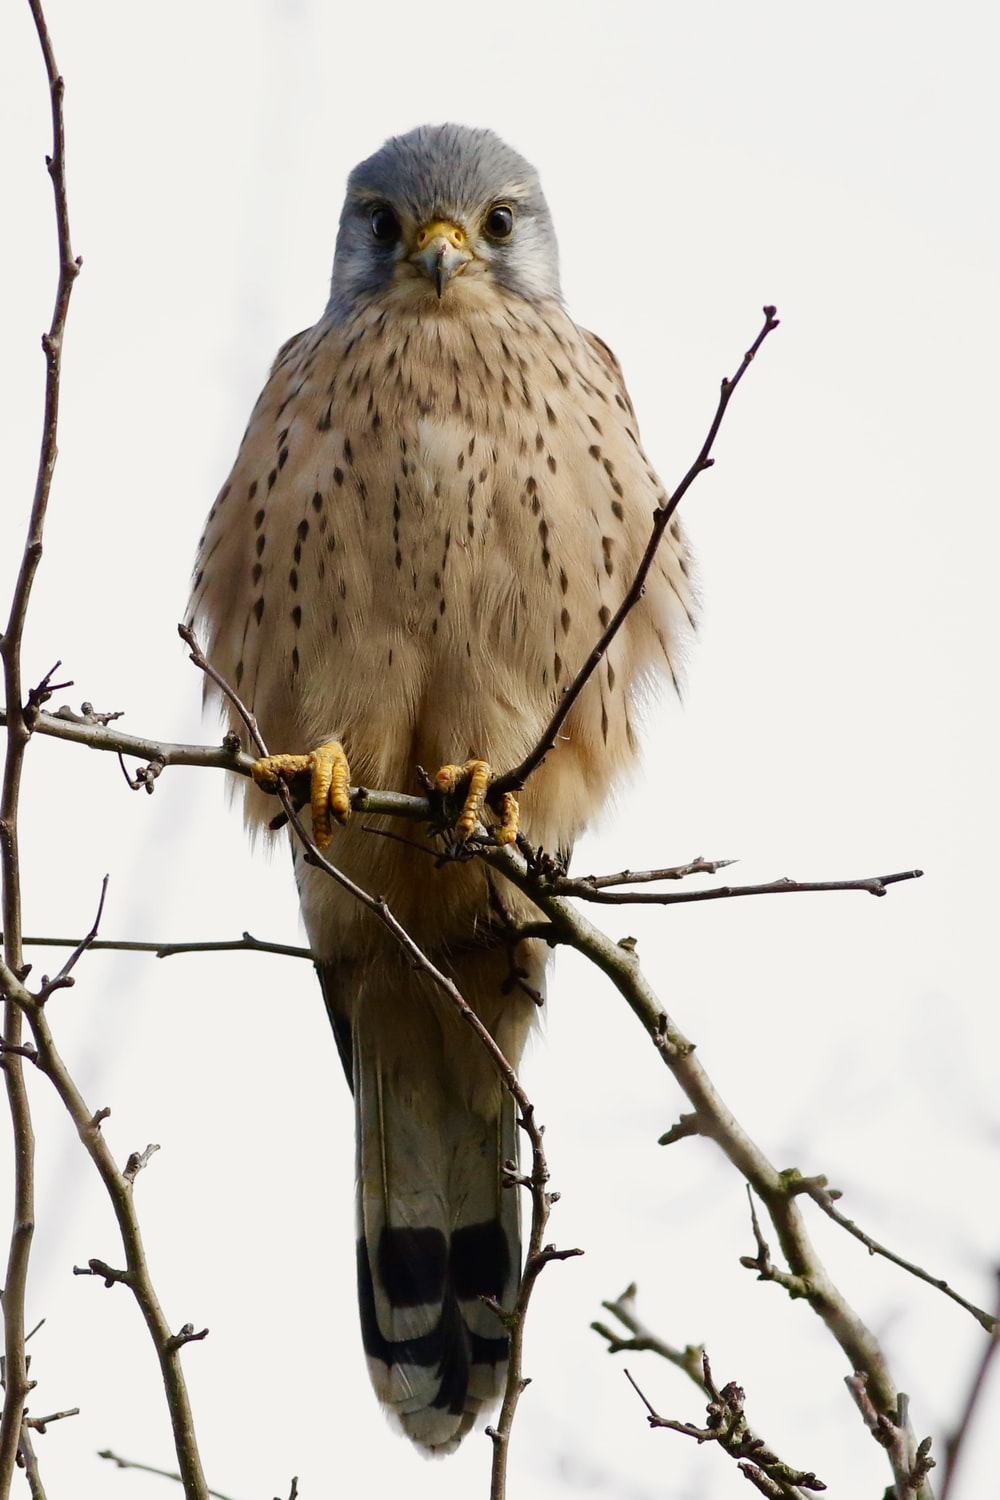 white, gray, black, and brown bird on brown tree branch over cloudy sky at daytime